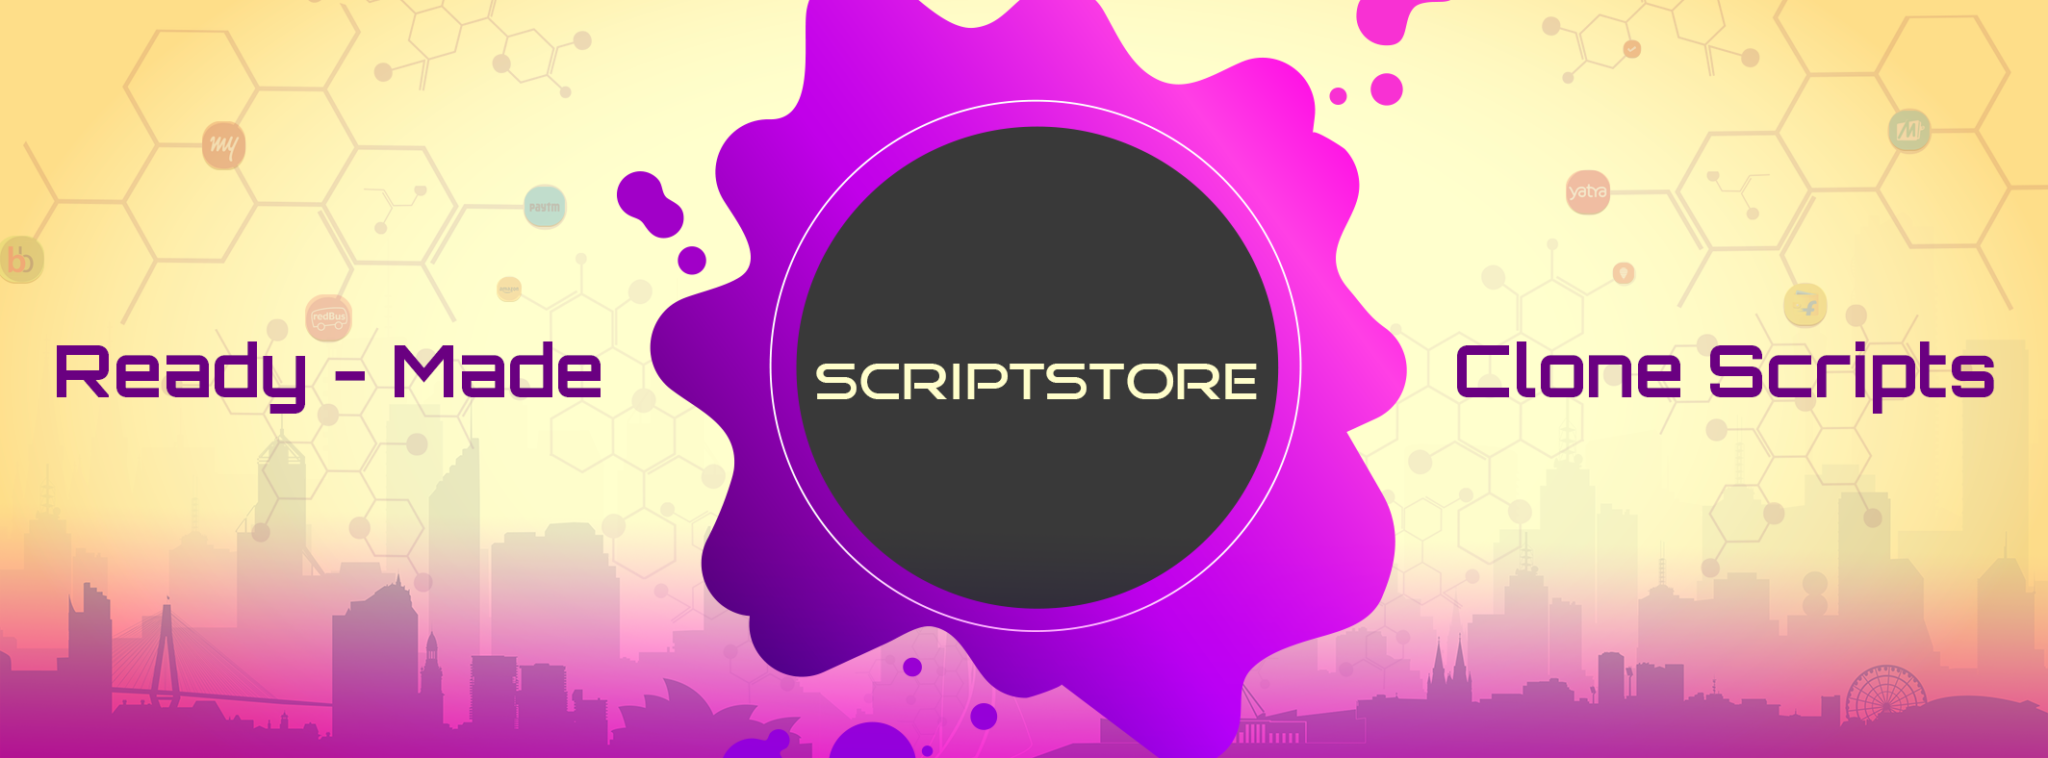 Script-Store-Banner-new